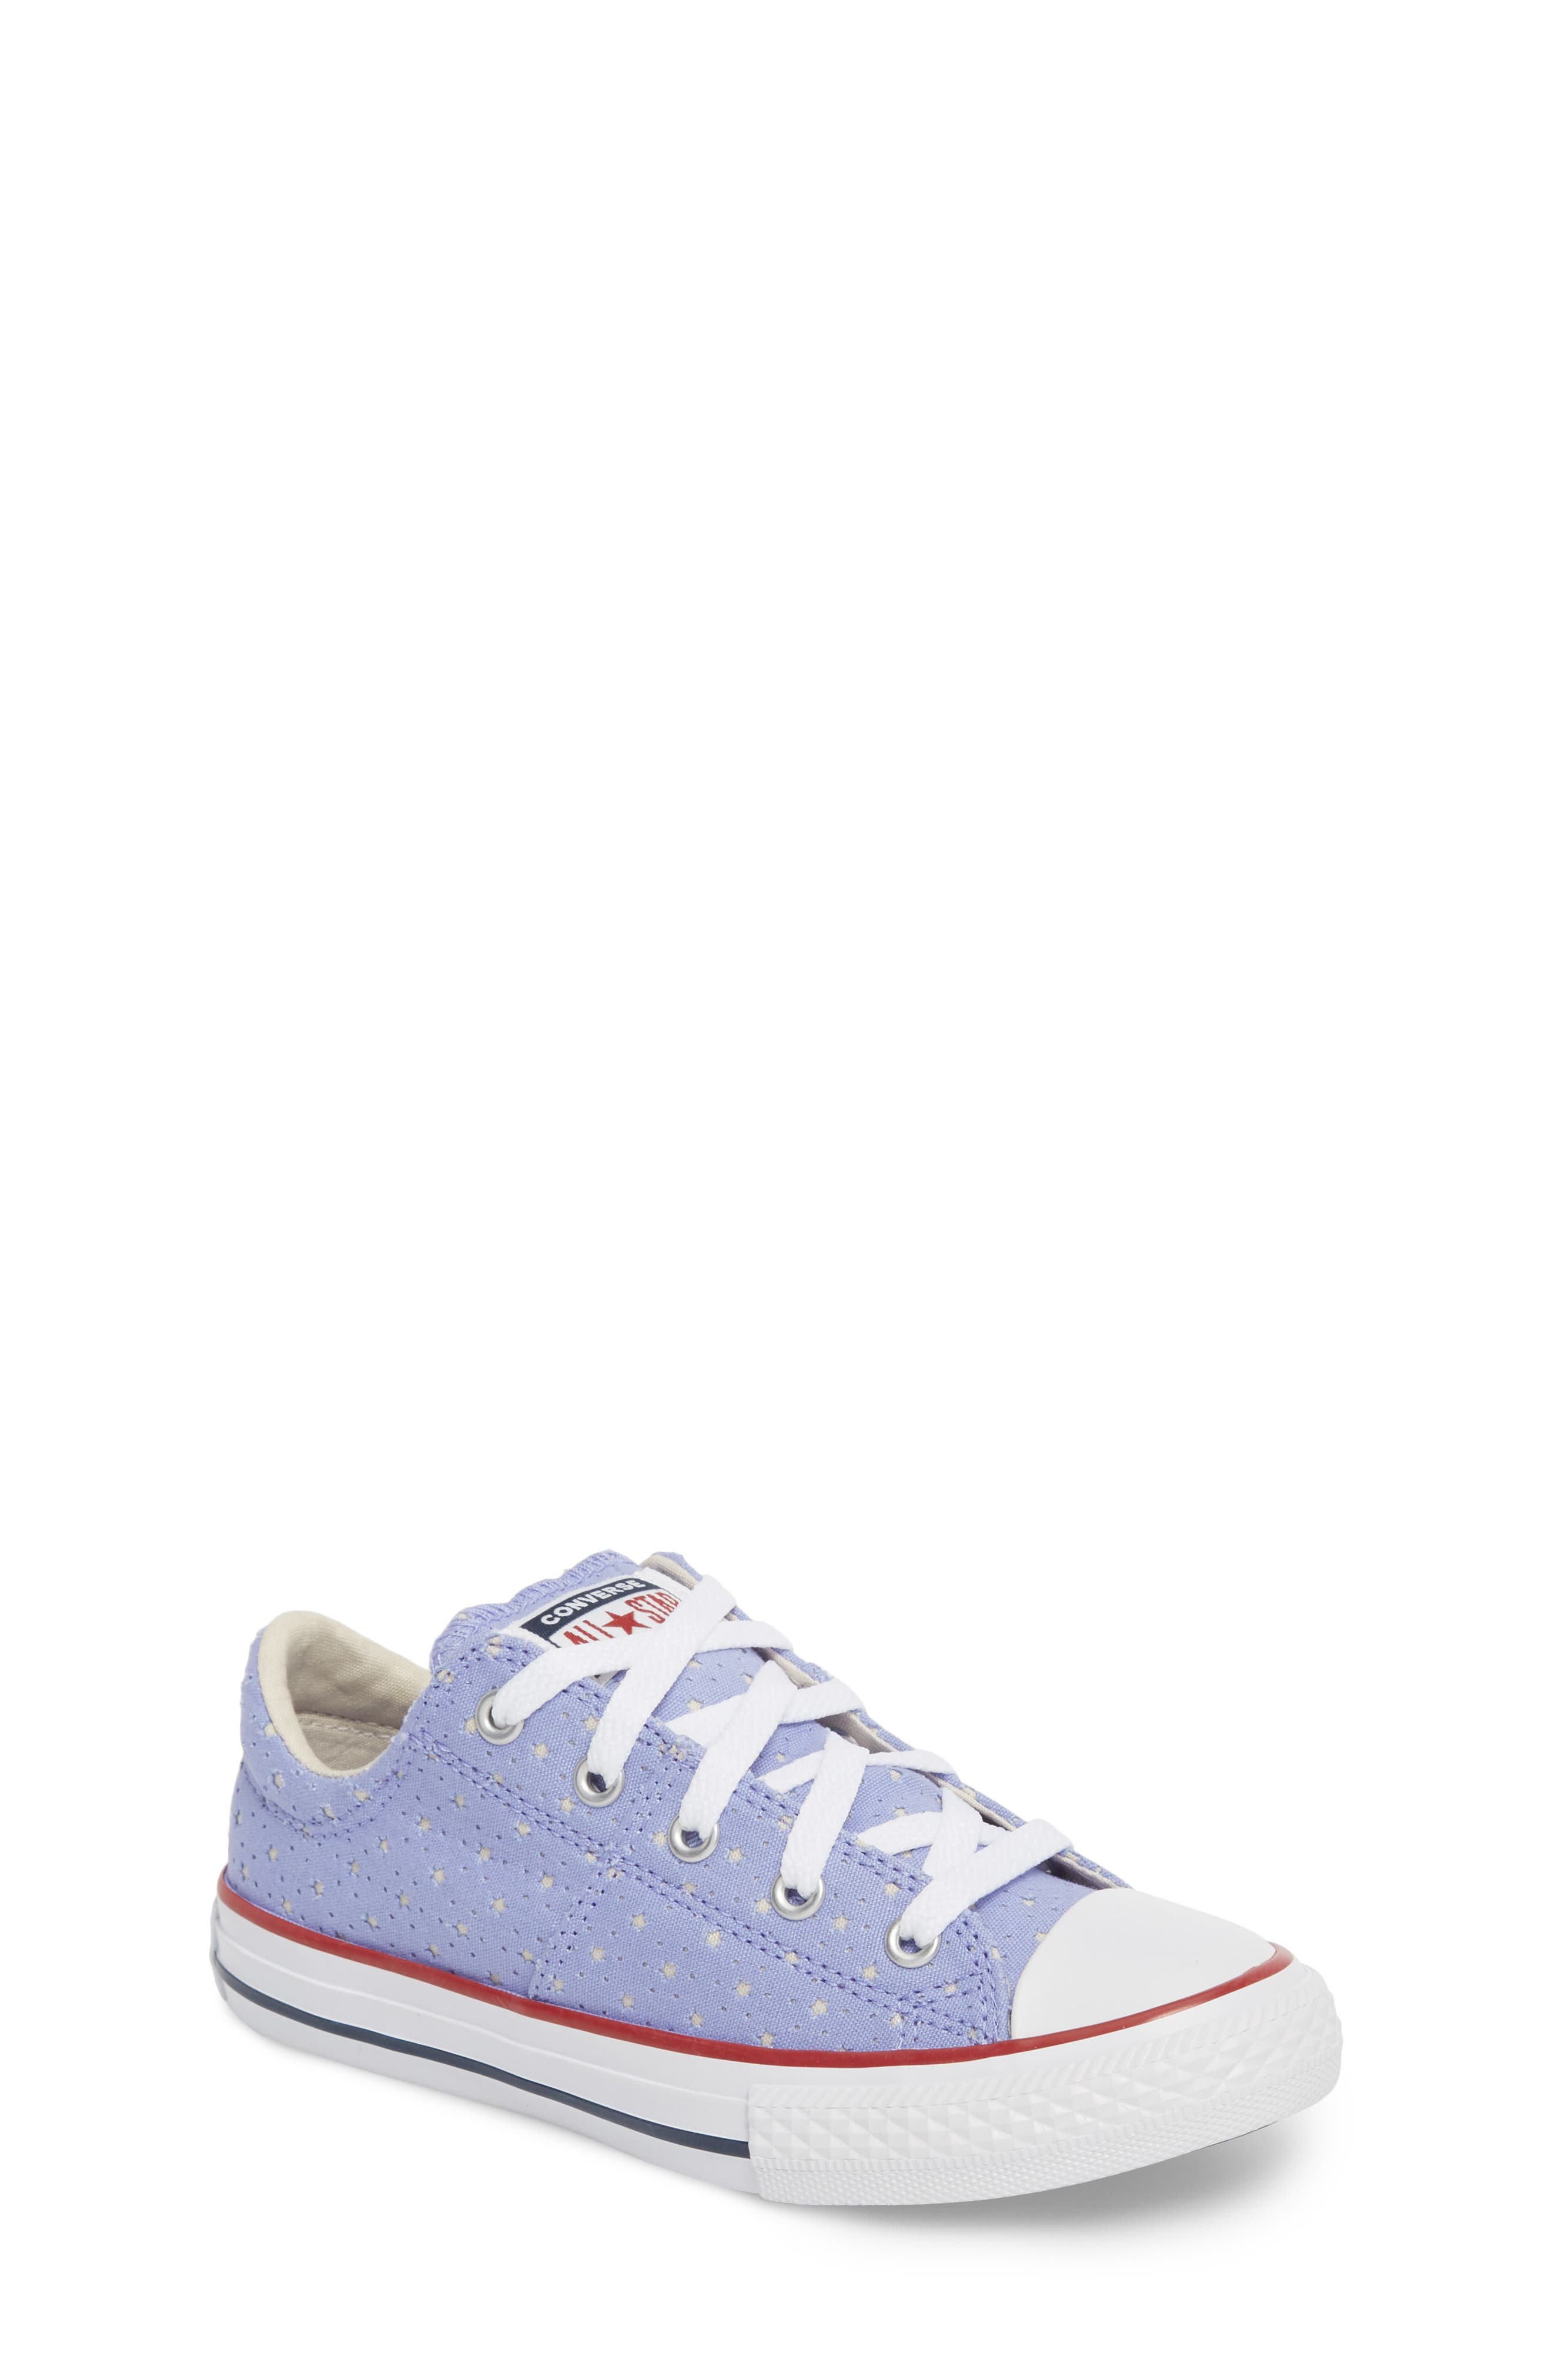 Chuck Taylor<sup>®</sup> All Star<sup>®</sup> Madison Sneaker,                         Main,                         color, 531